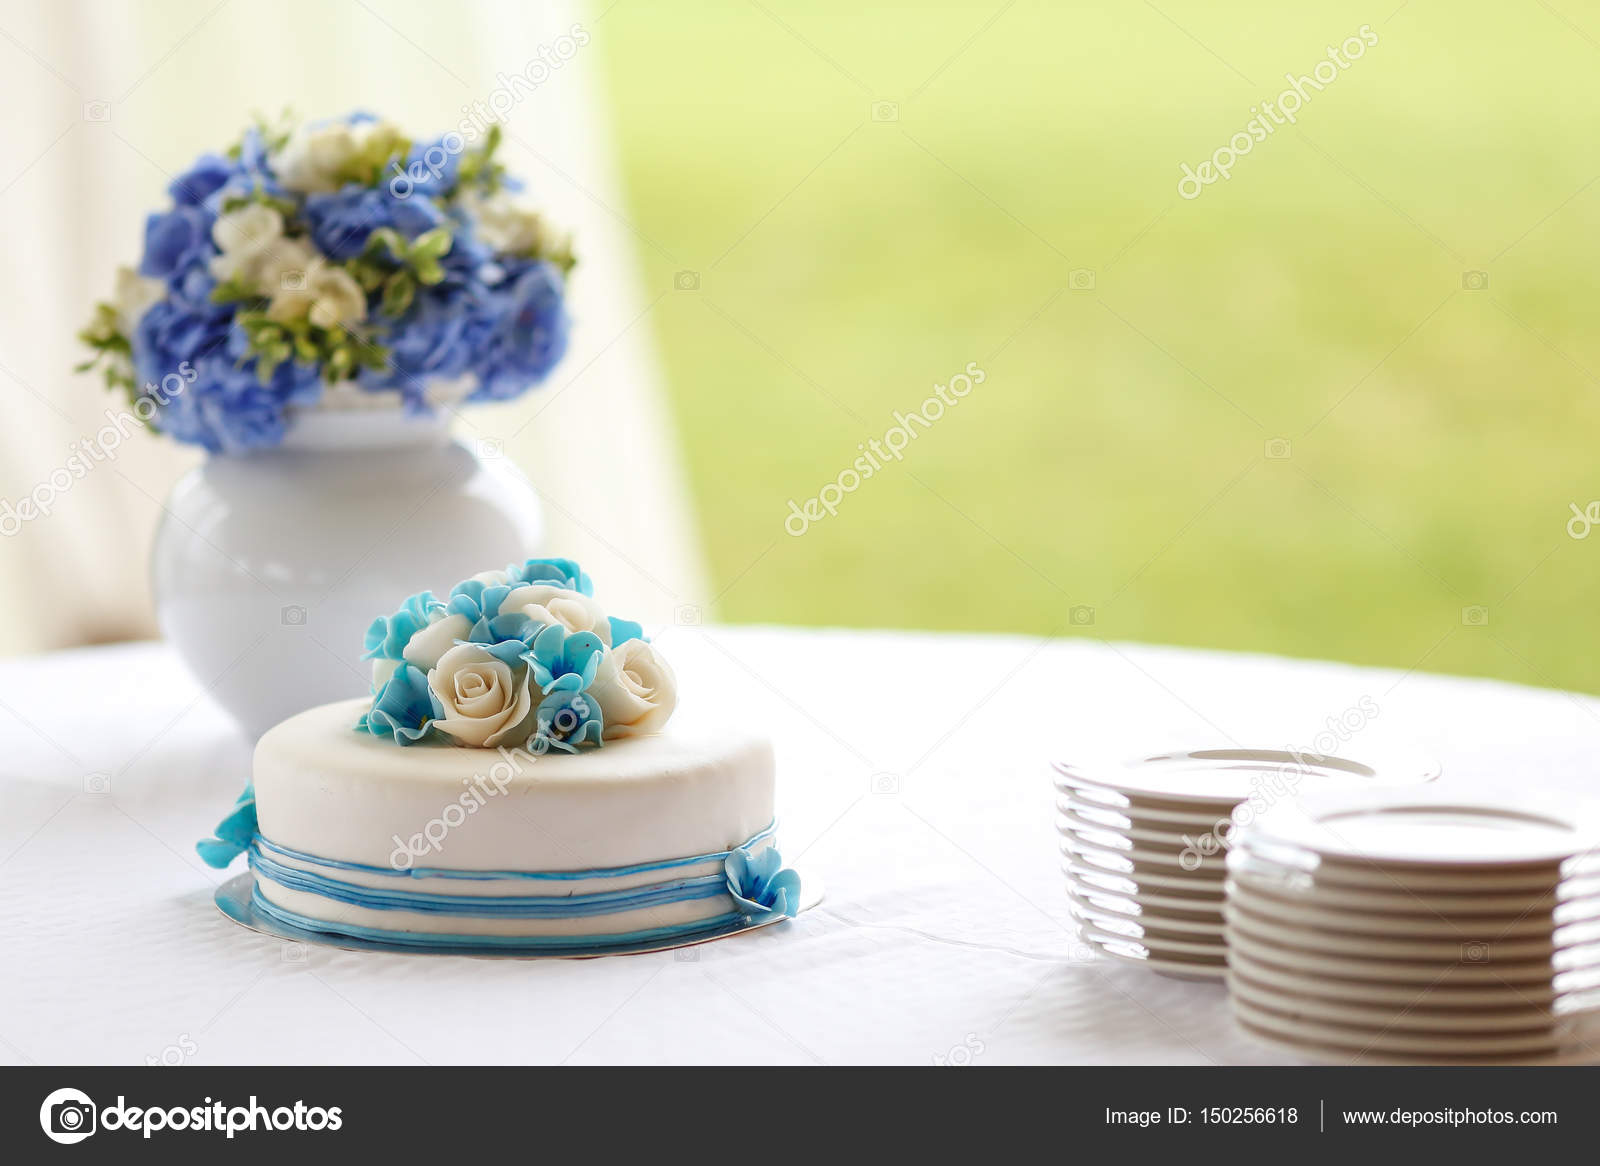 Wedding decoration with a cake and a vase with blue and white ...